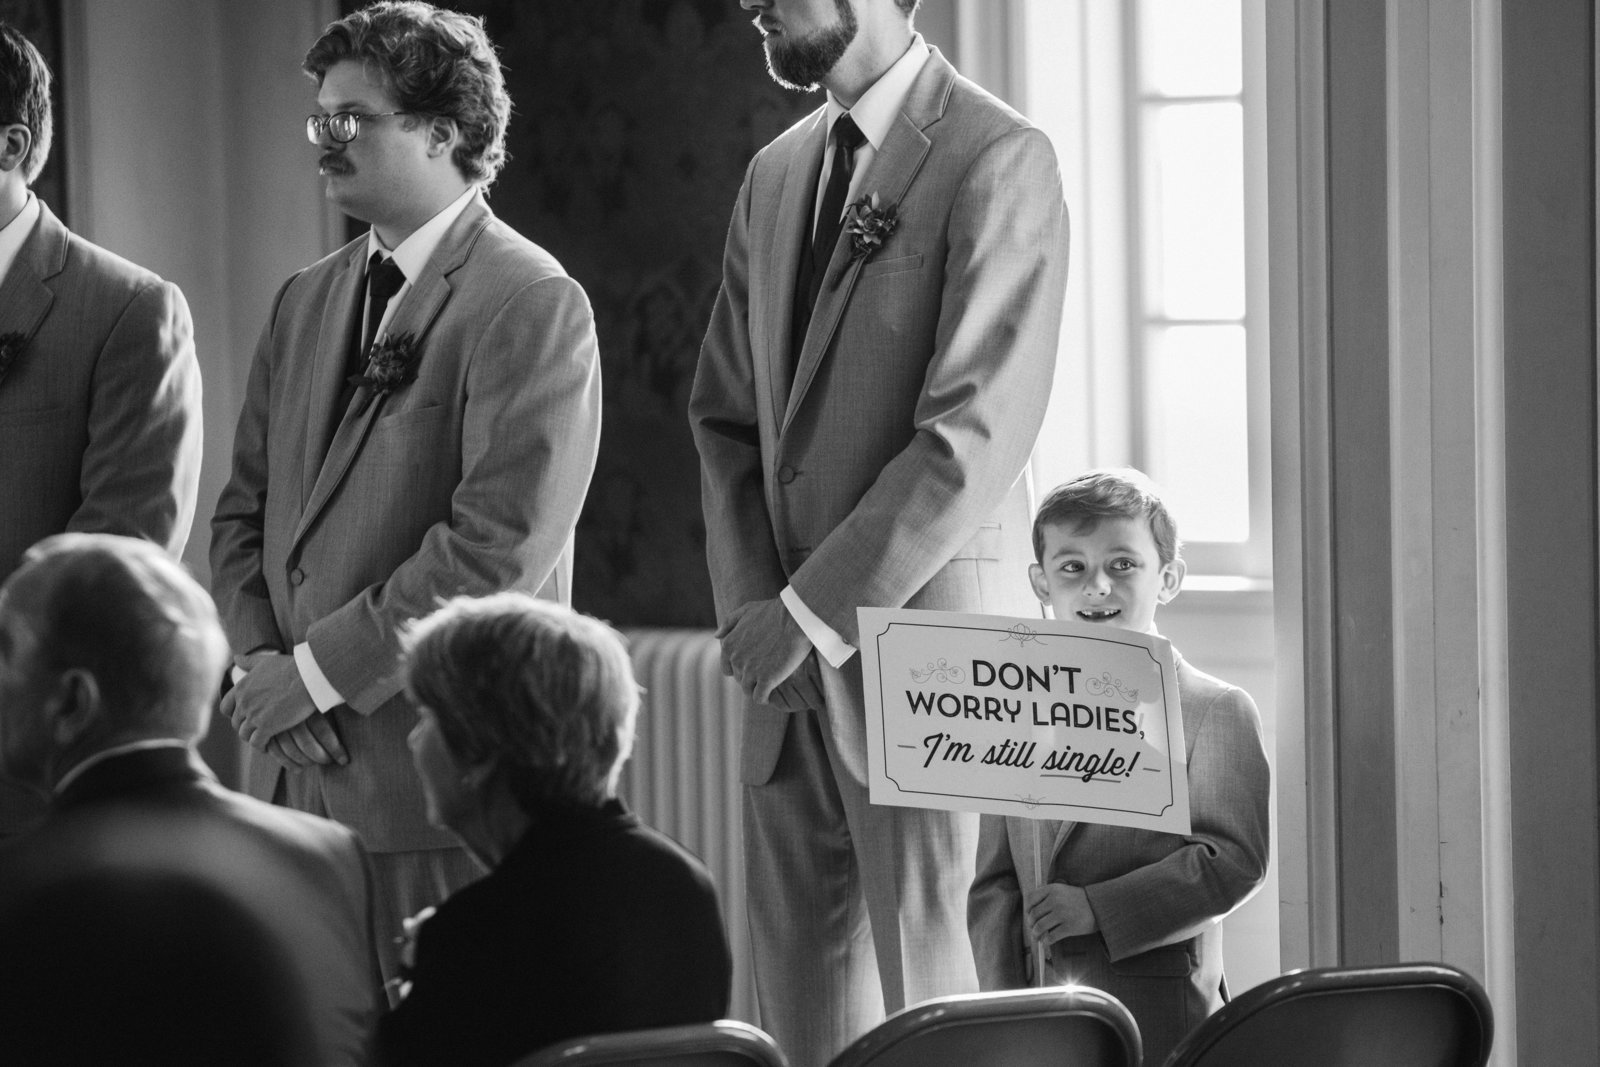 Kid holding sign at wedding